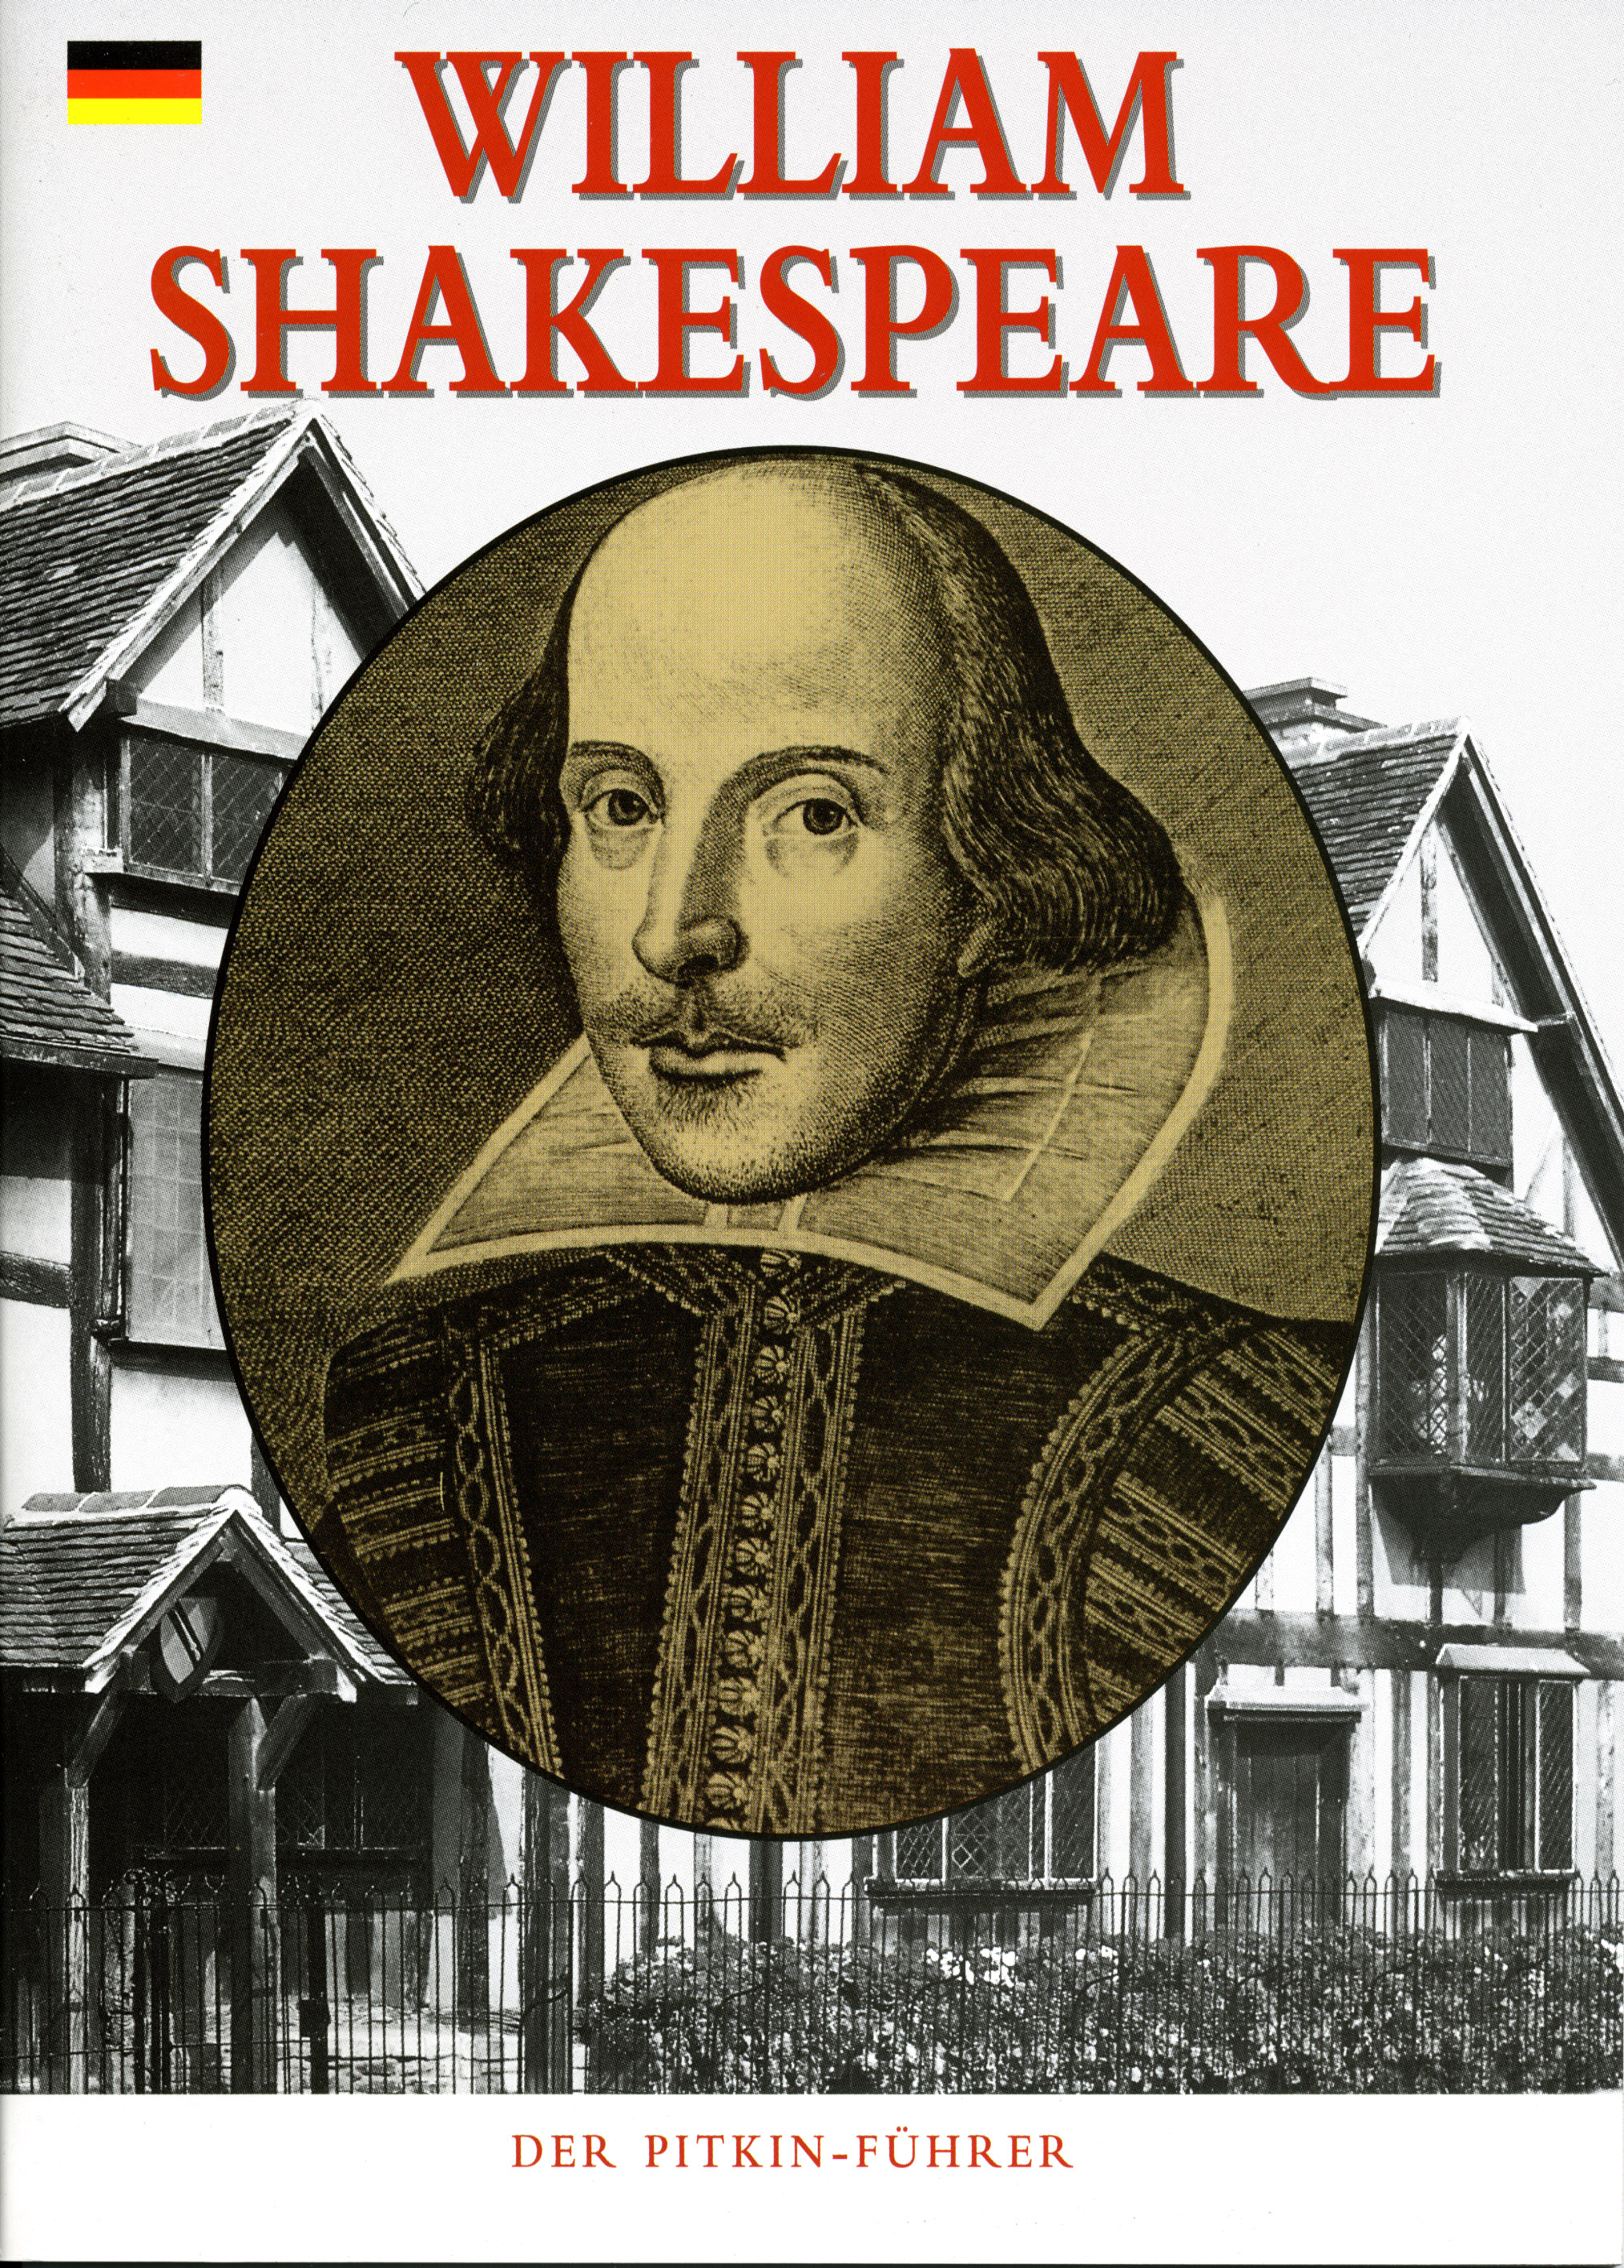 William Shakespeare – German